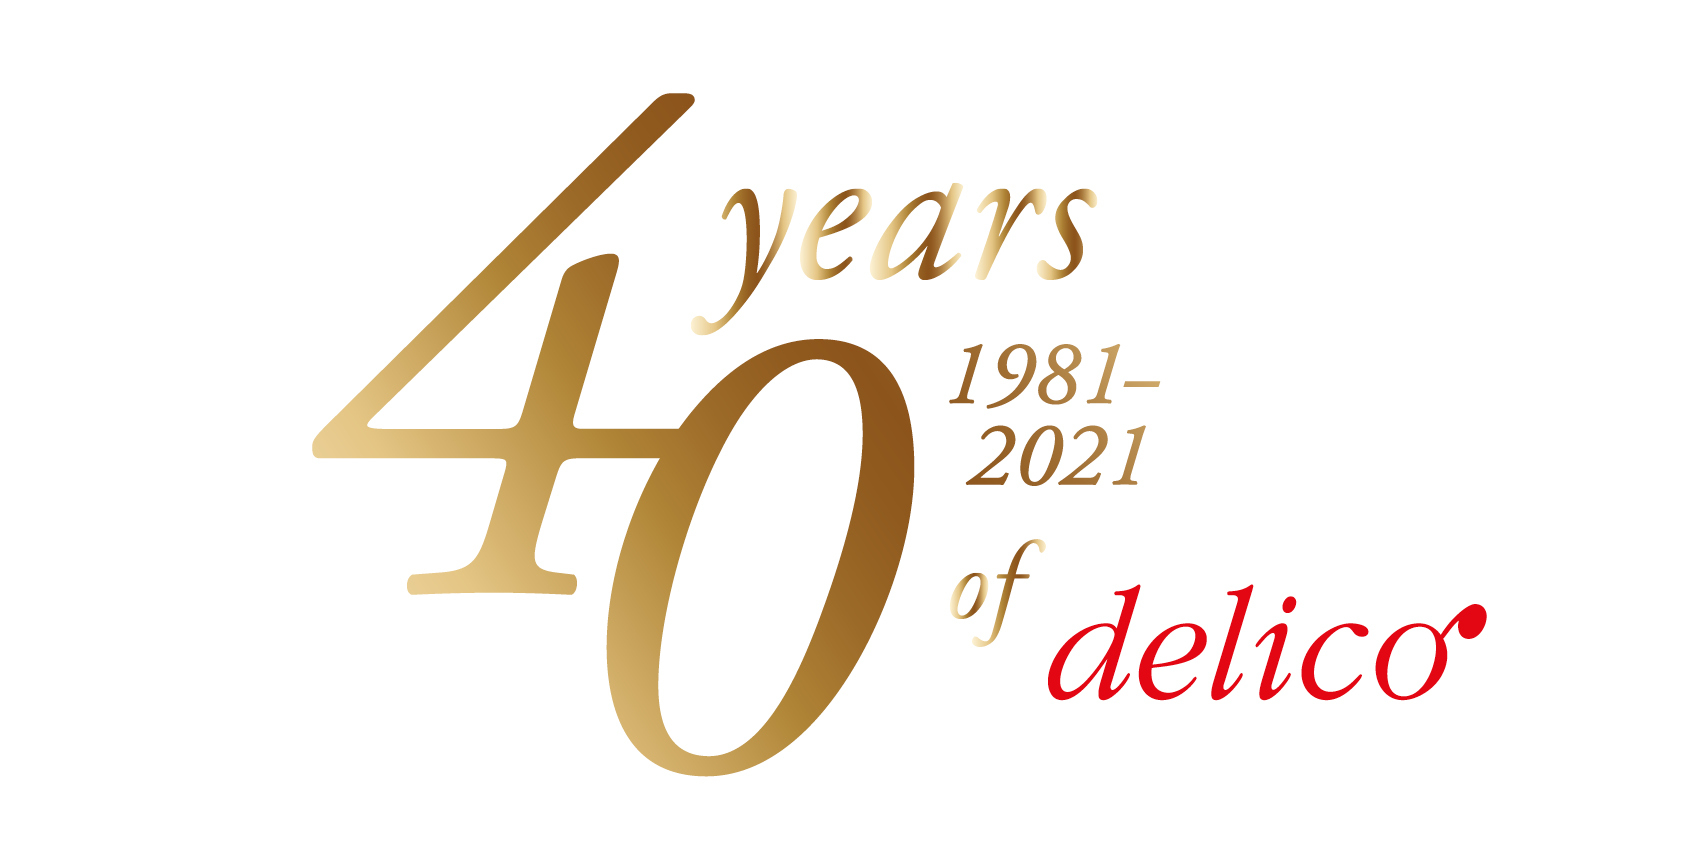 We are celebrating our 40th birthday!